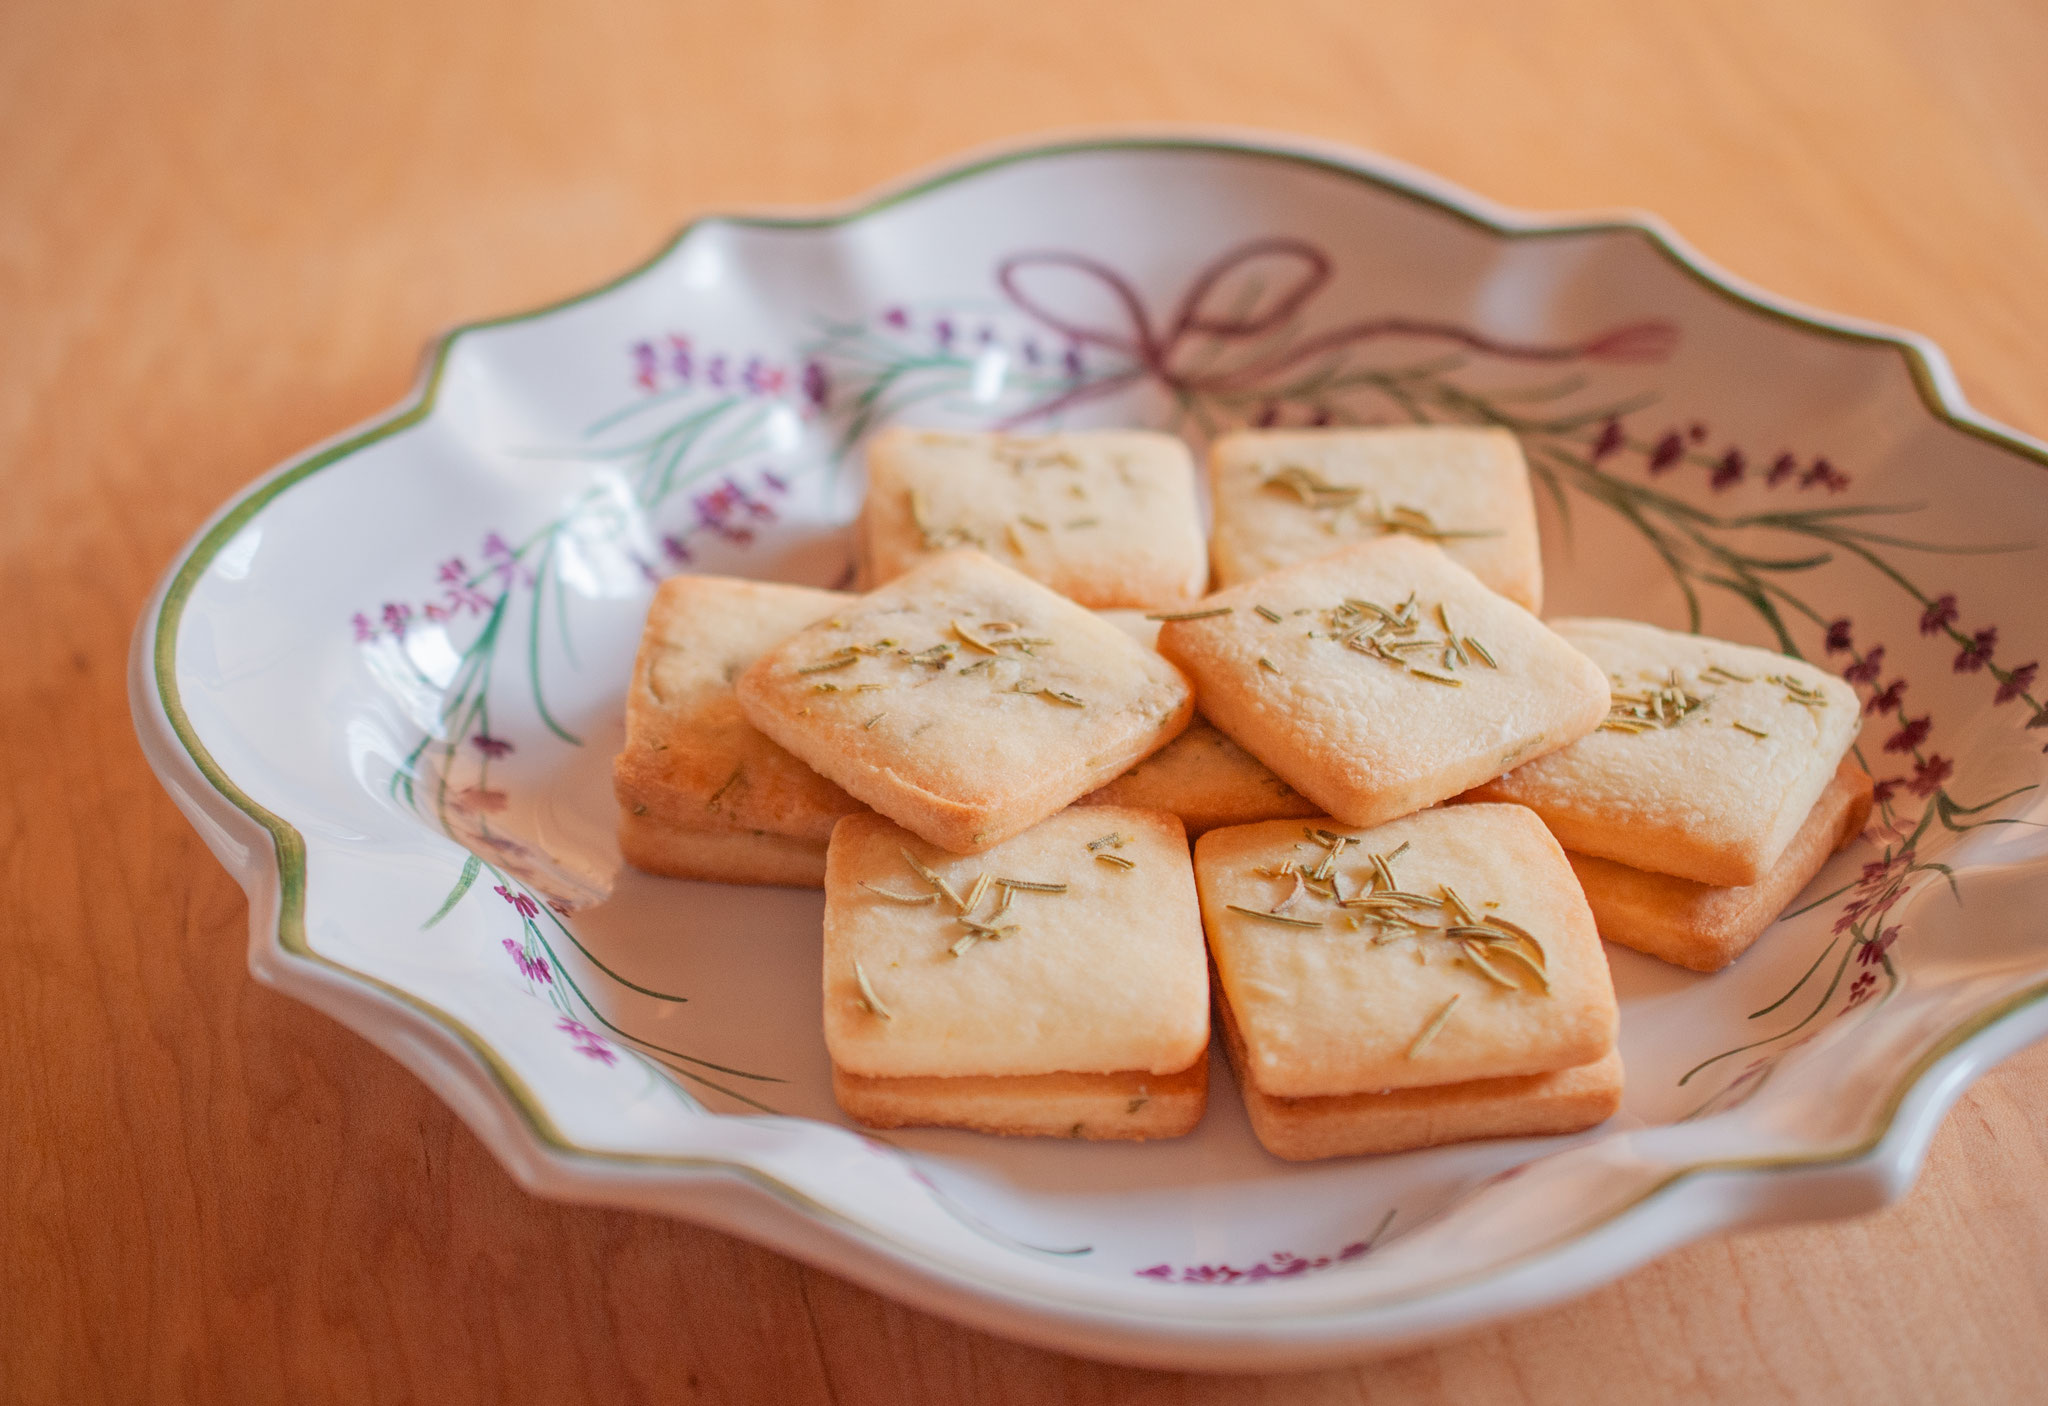 a new recipe for Rosemary cookies, Fleur*Fleur*